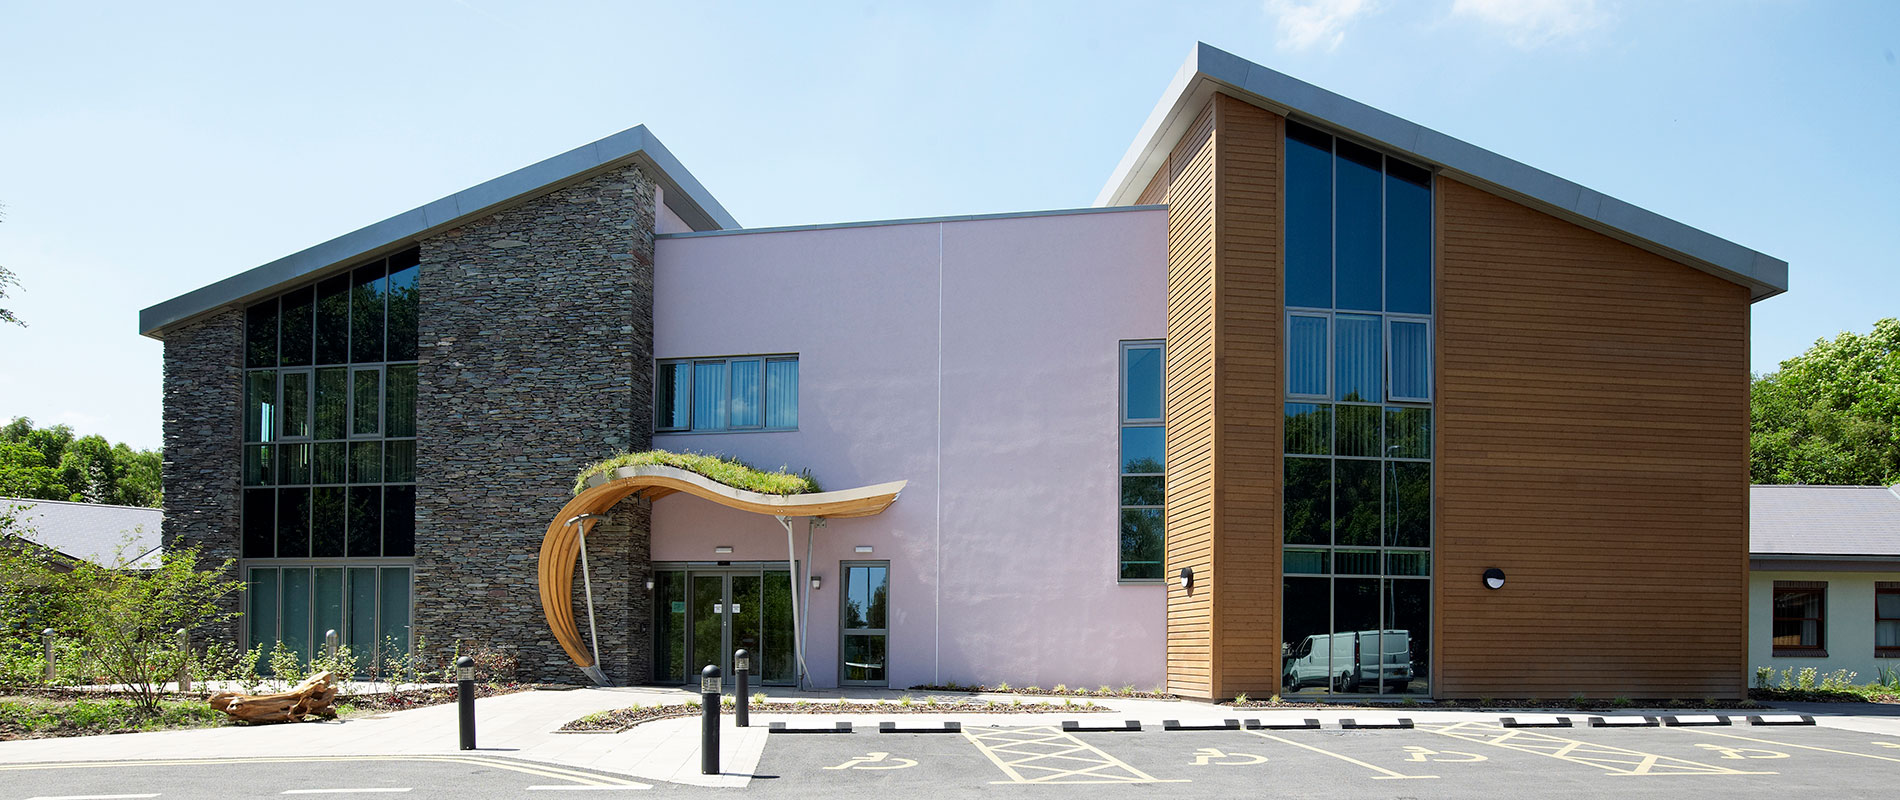 Thermally Modified Wood Cladding Provides a Wonderful Finish to Rotherham Hospital